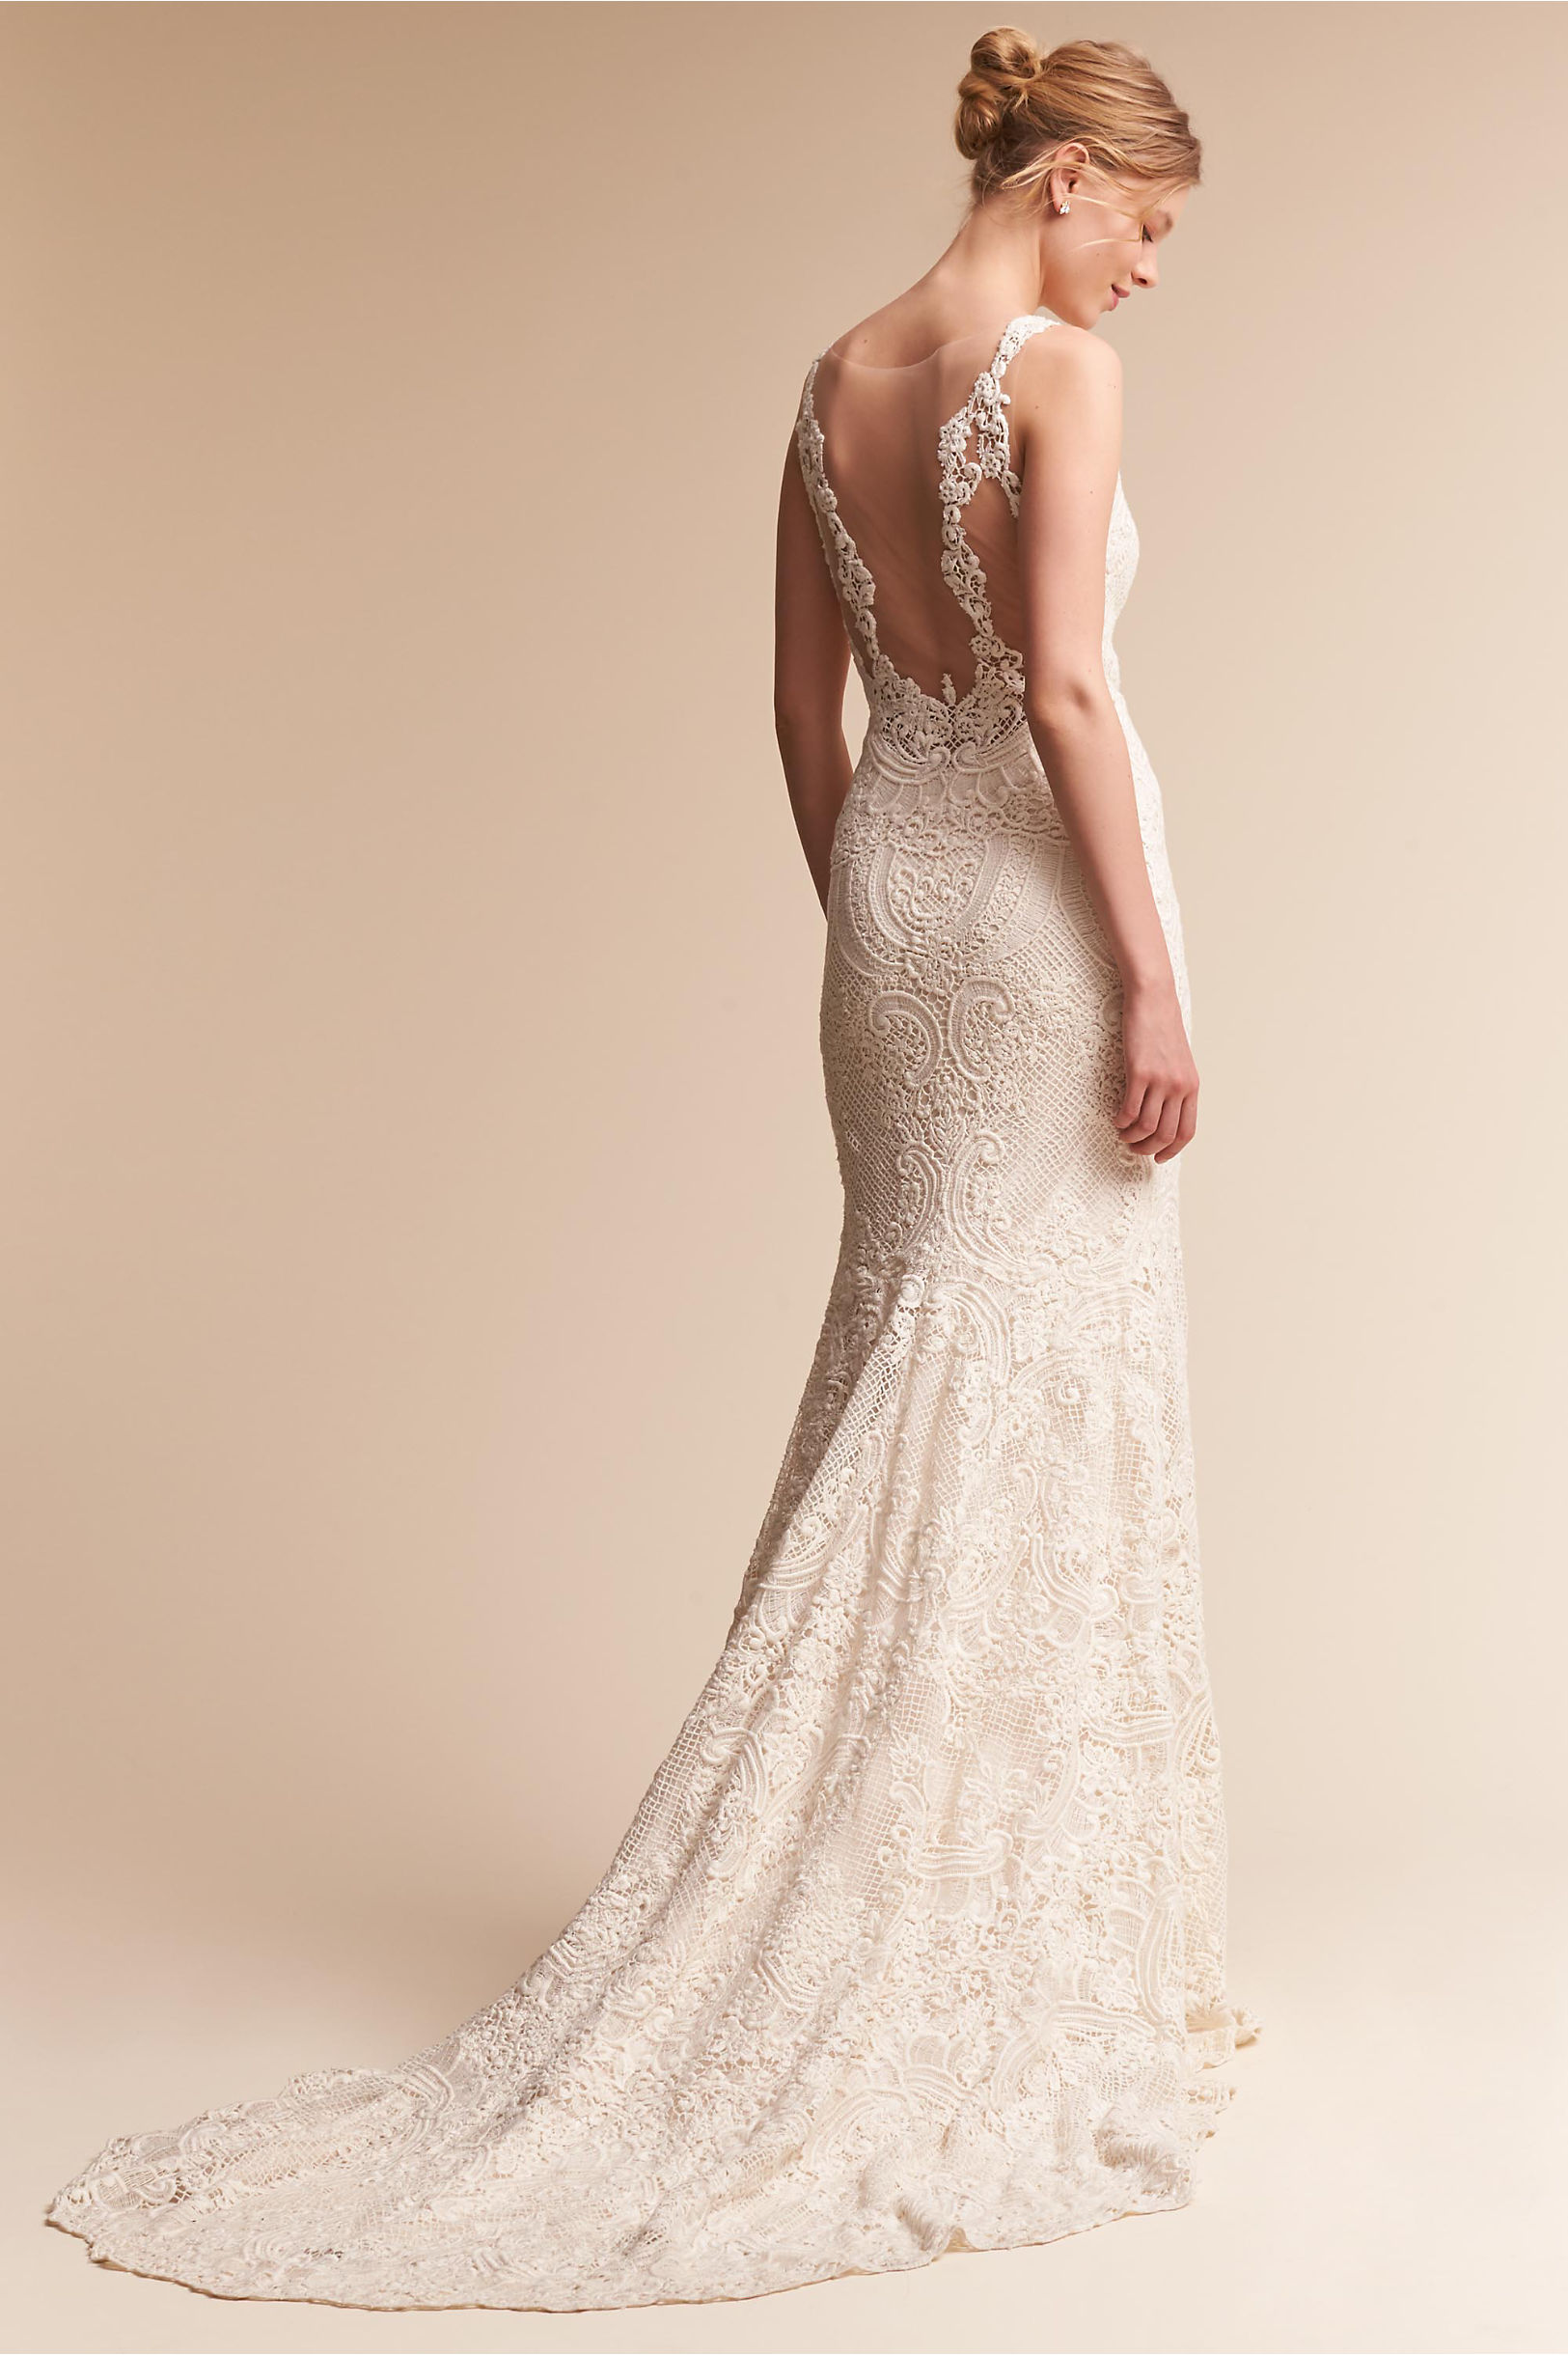 Low Back Wedding Dresses & Backless Gowns | BHLDN